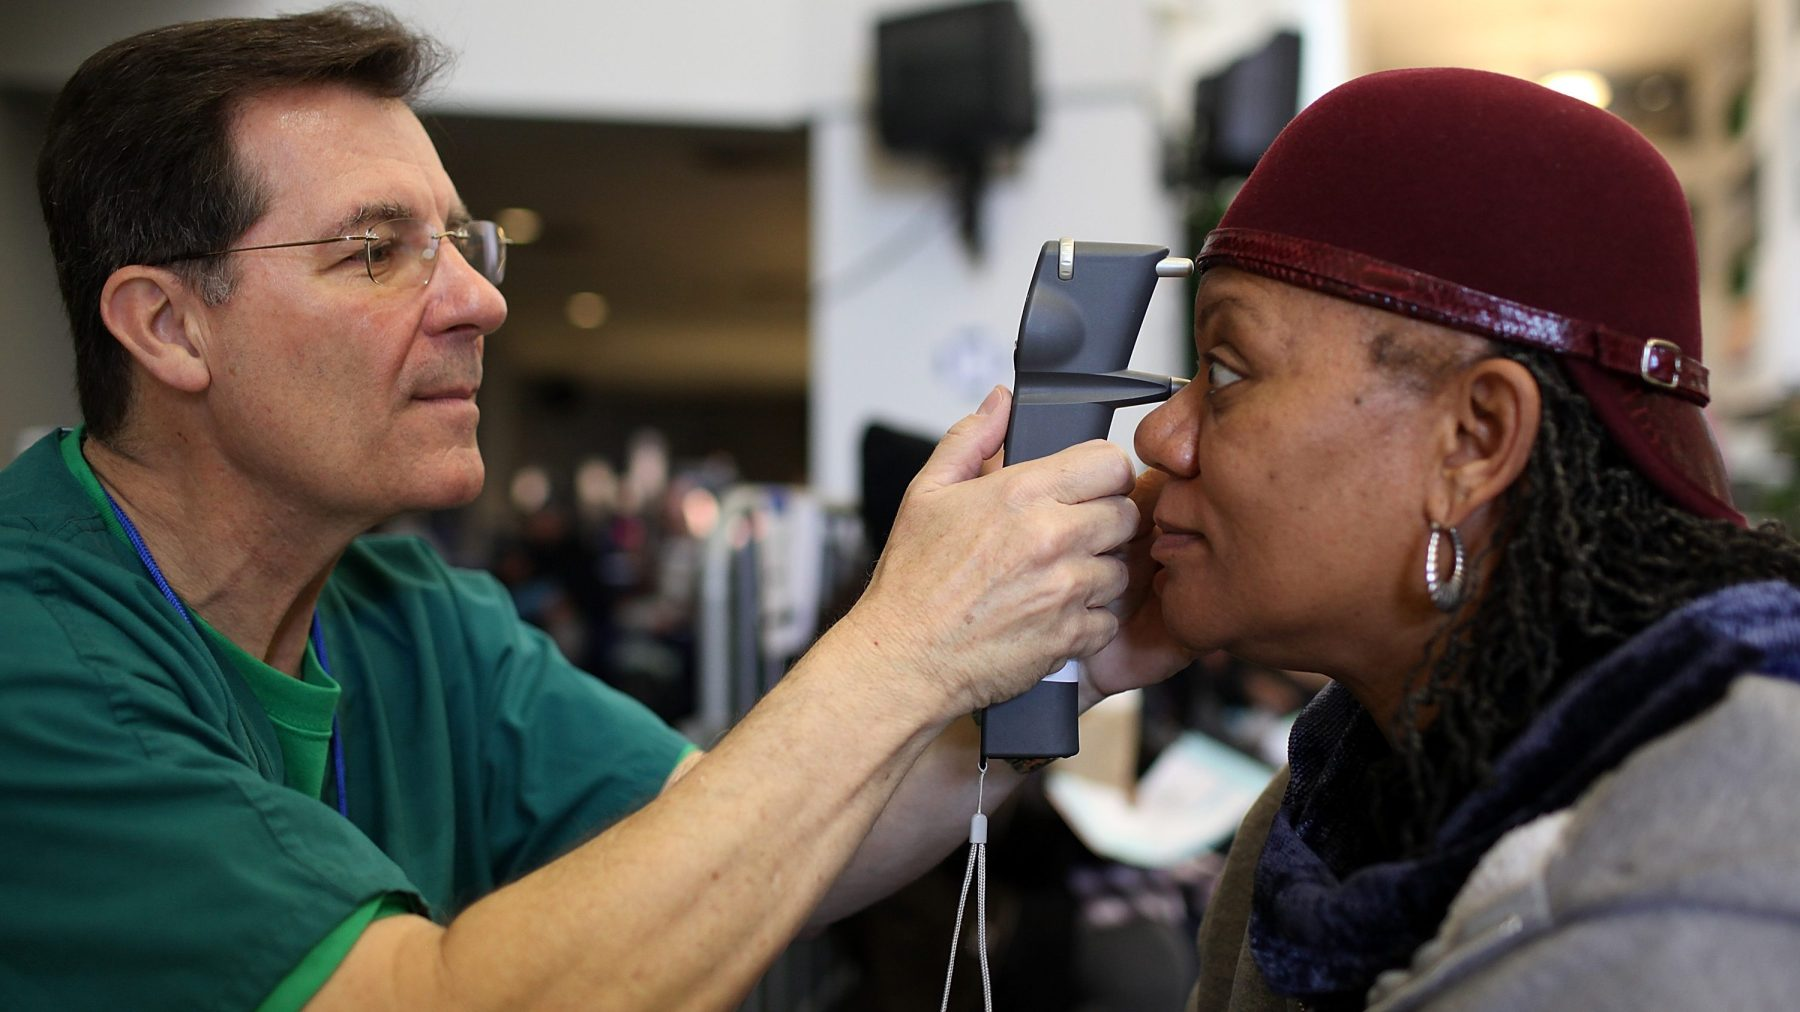 Mary Sanders (R) has her eyes examined by a Remote Area Medical (RAM) volunteer optometrist John Weis during a free clinic held at the Oakland-Alameda County Coliseum on April 11, 2011 in Oakland, California. (Justin Sullivan/Getty Images)